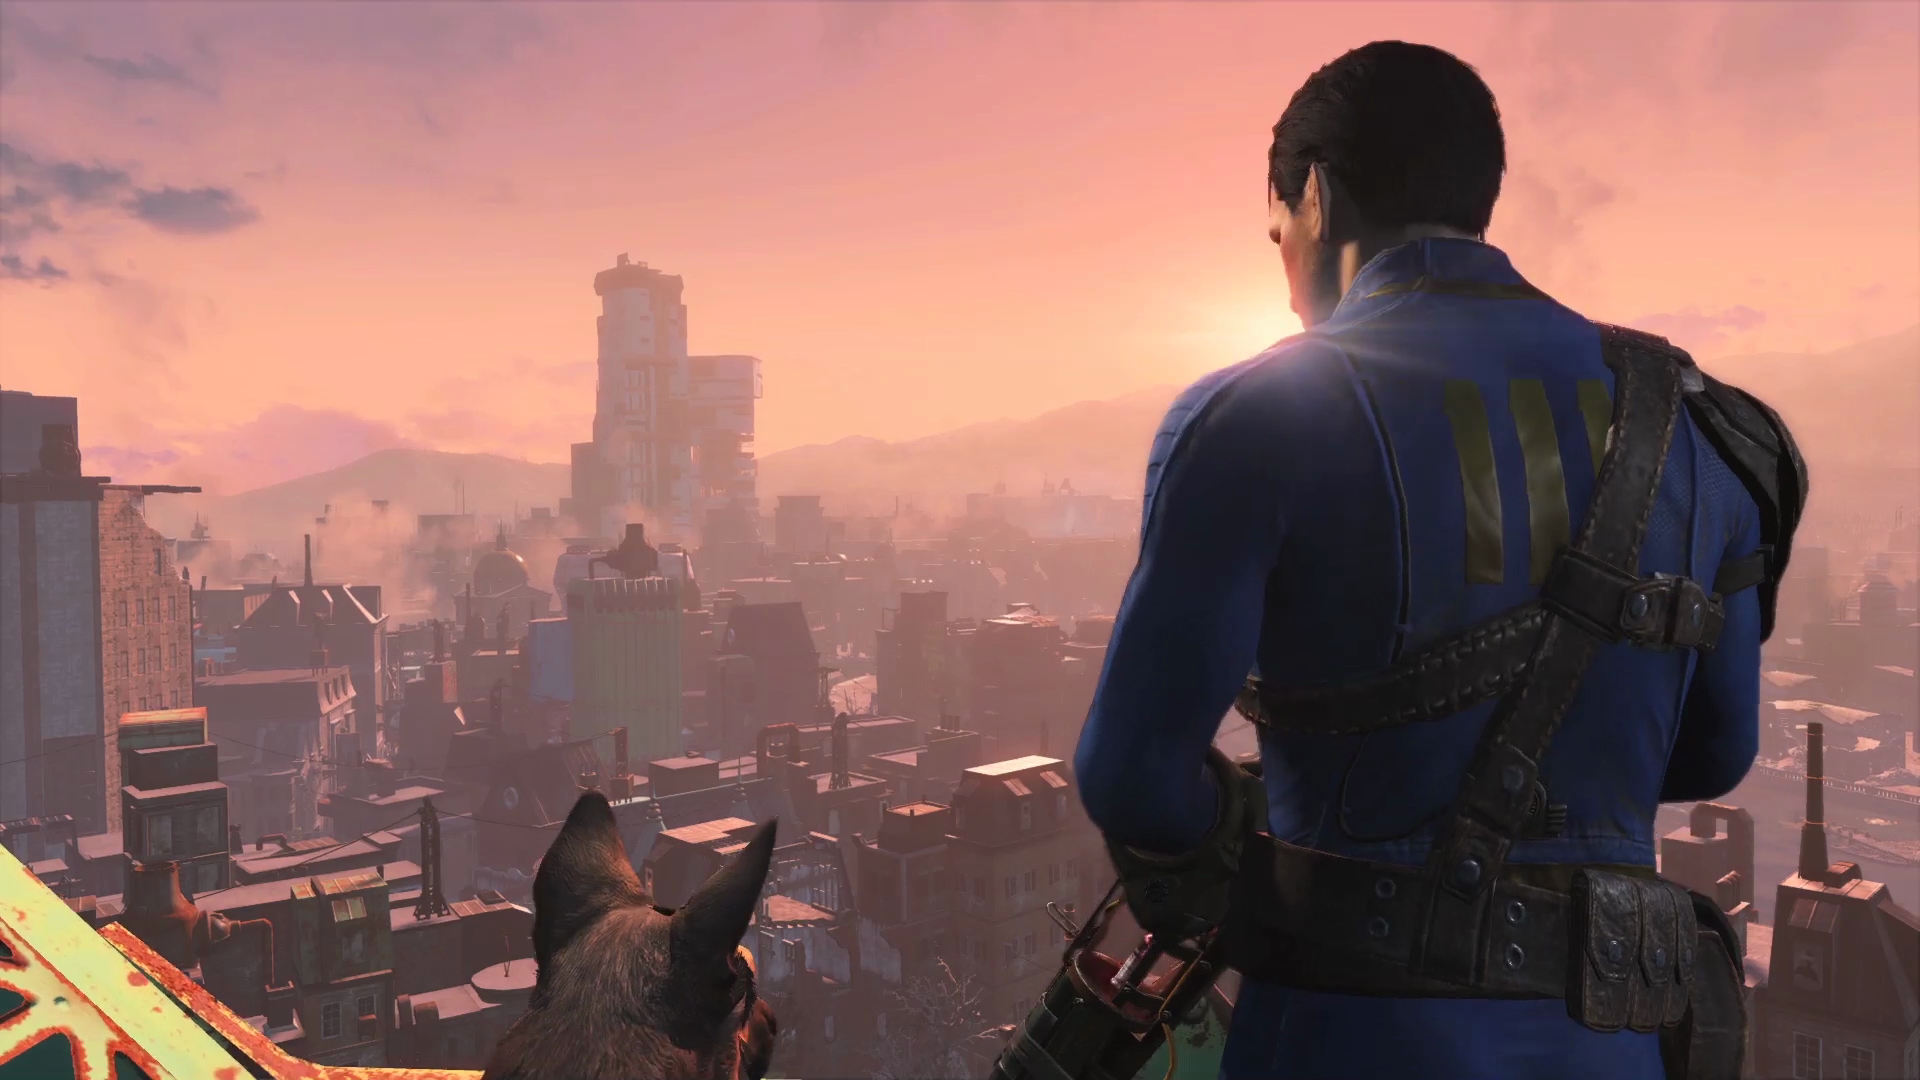 Just How Realistic is Fallout 4's Post-Apocalypse Anyway? - VICE